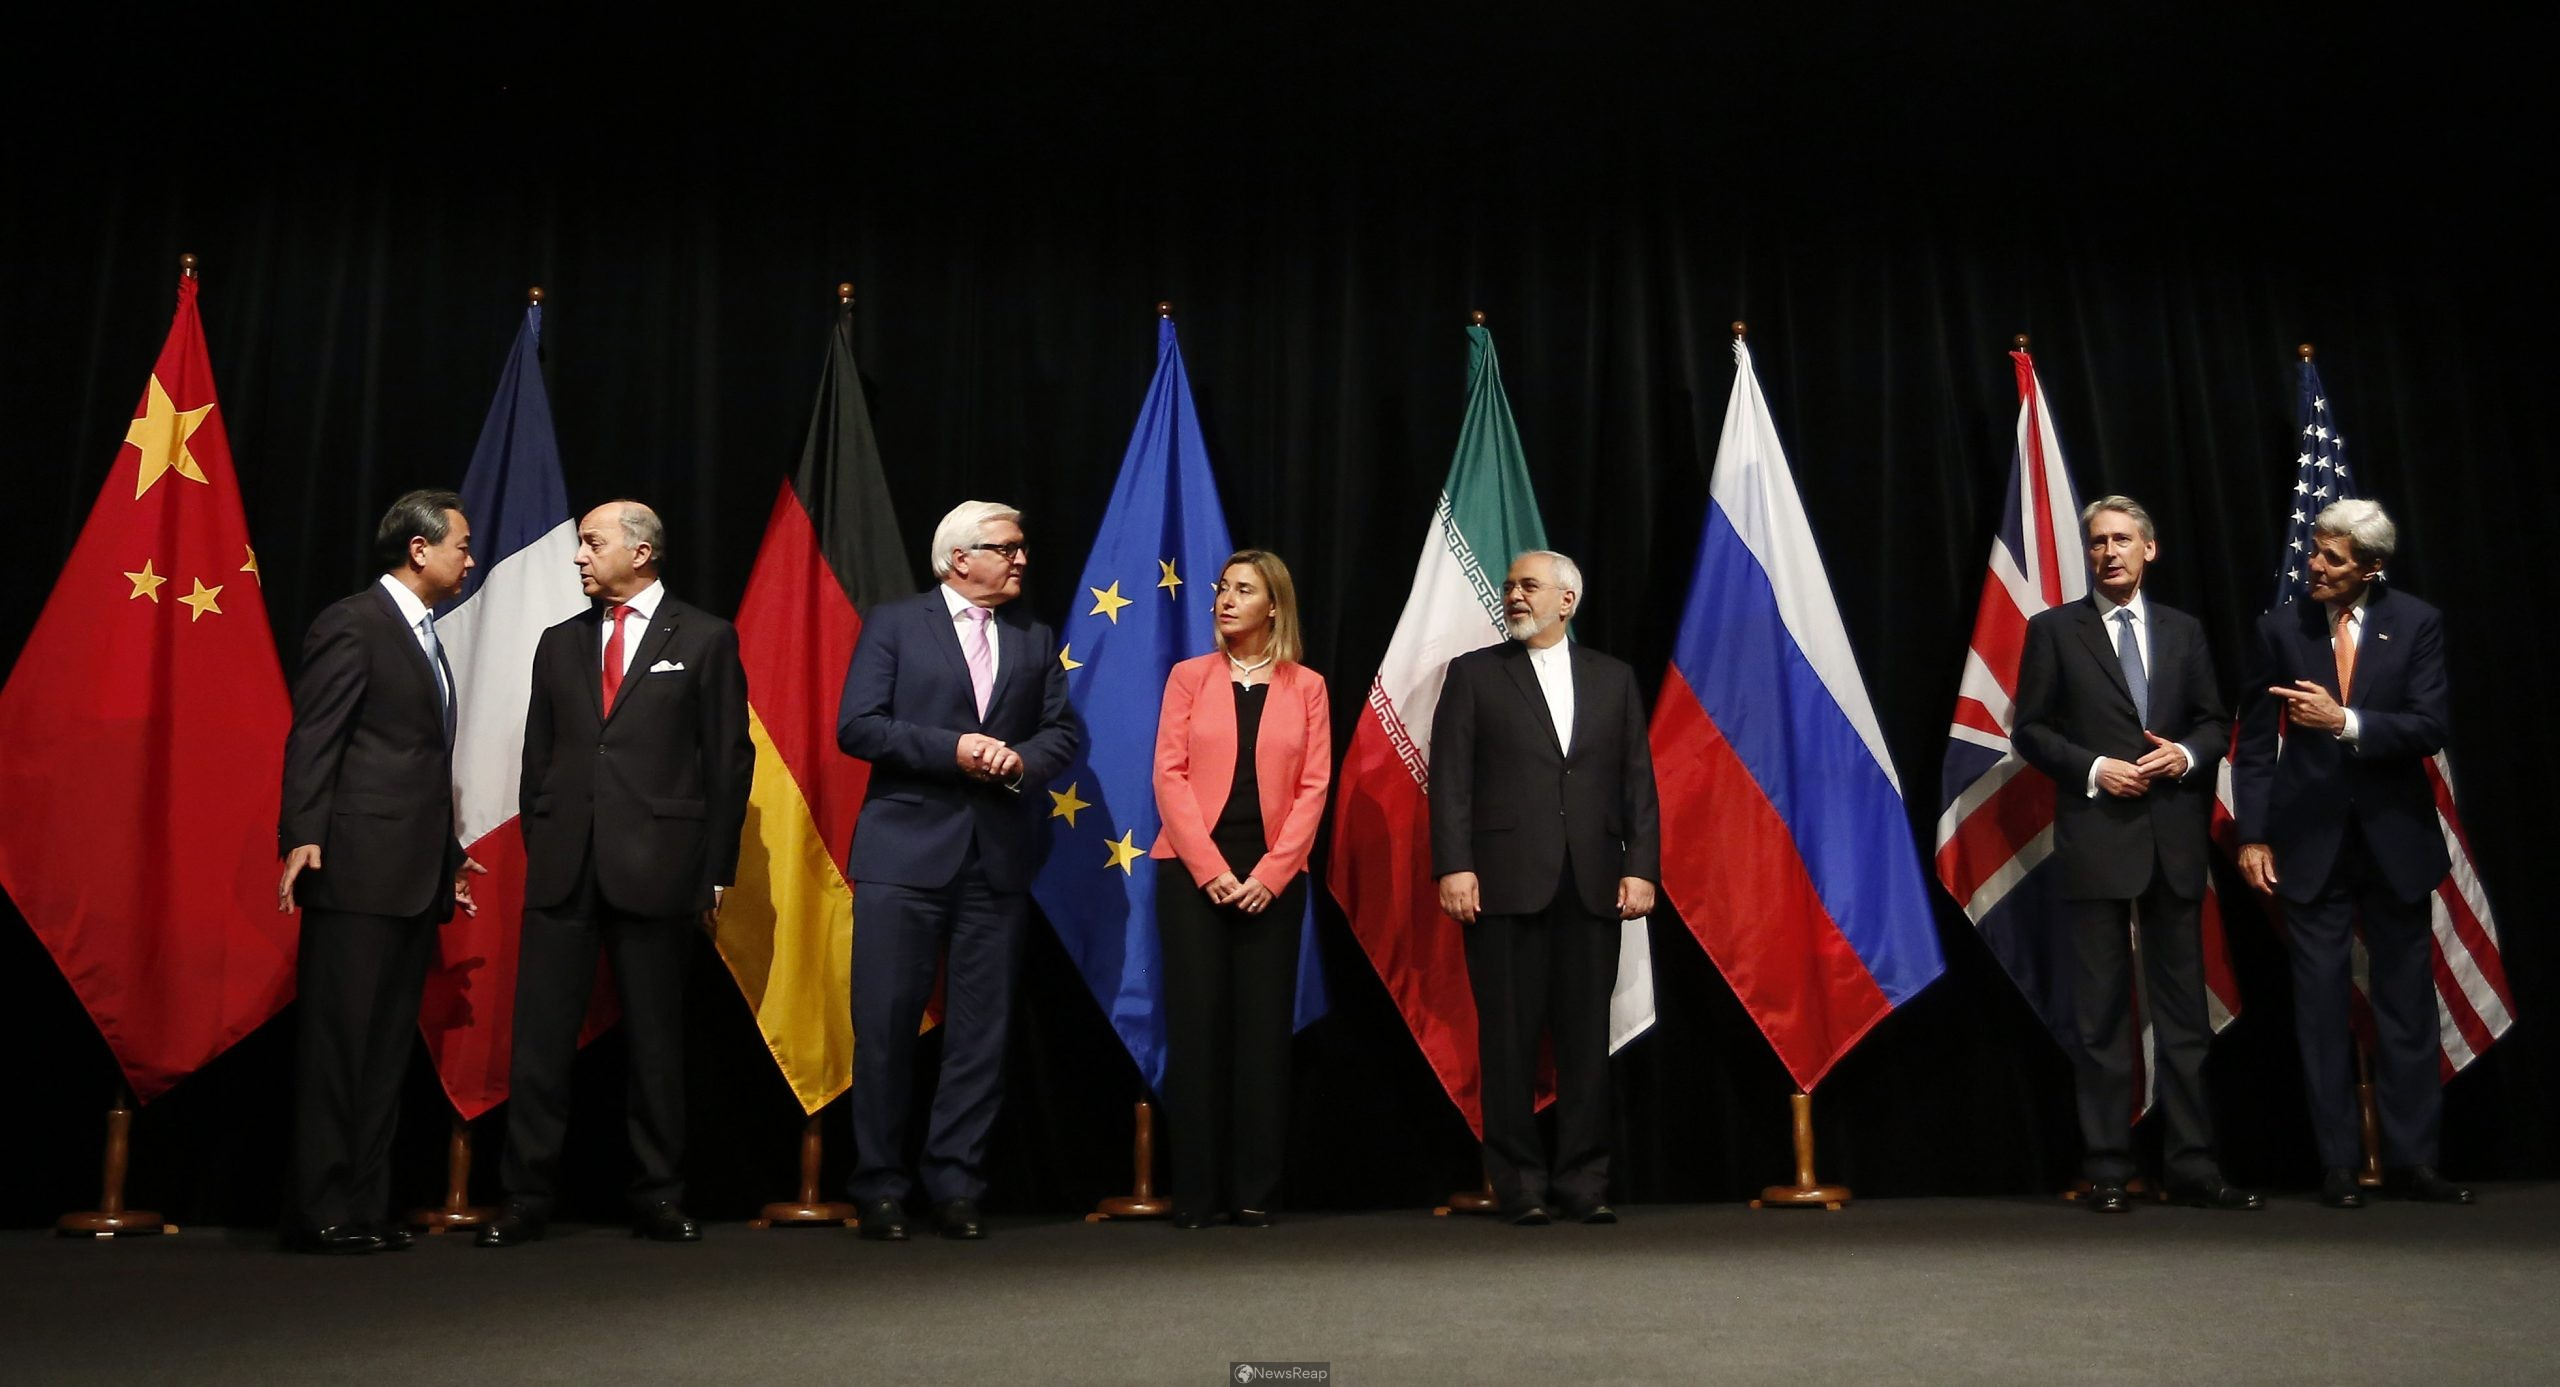 U.S.'s Coons would back resuming Iran nuclear deal, with caveats